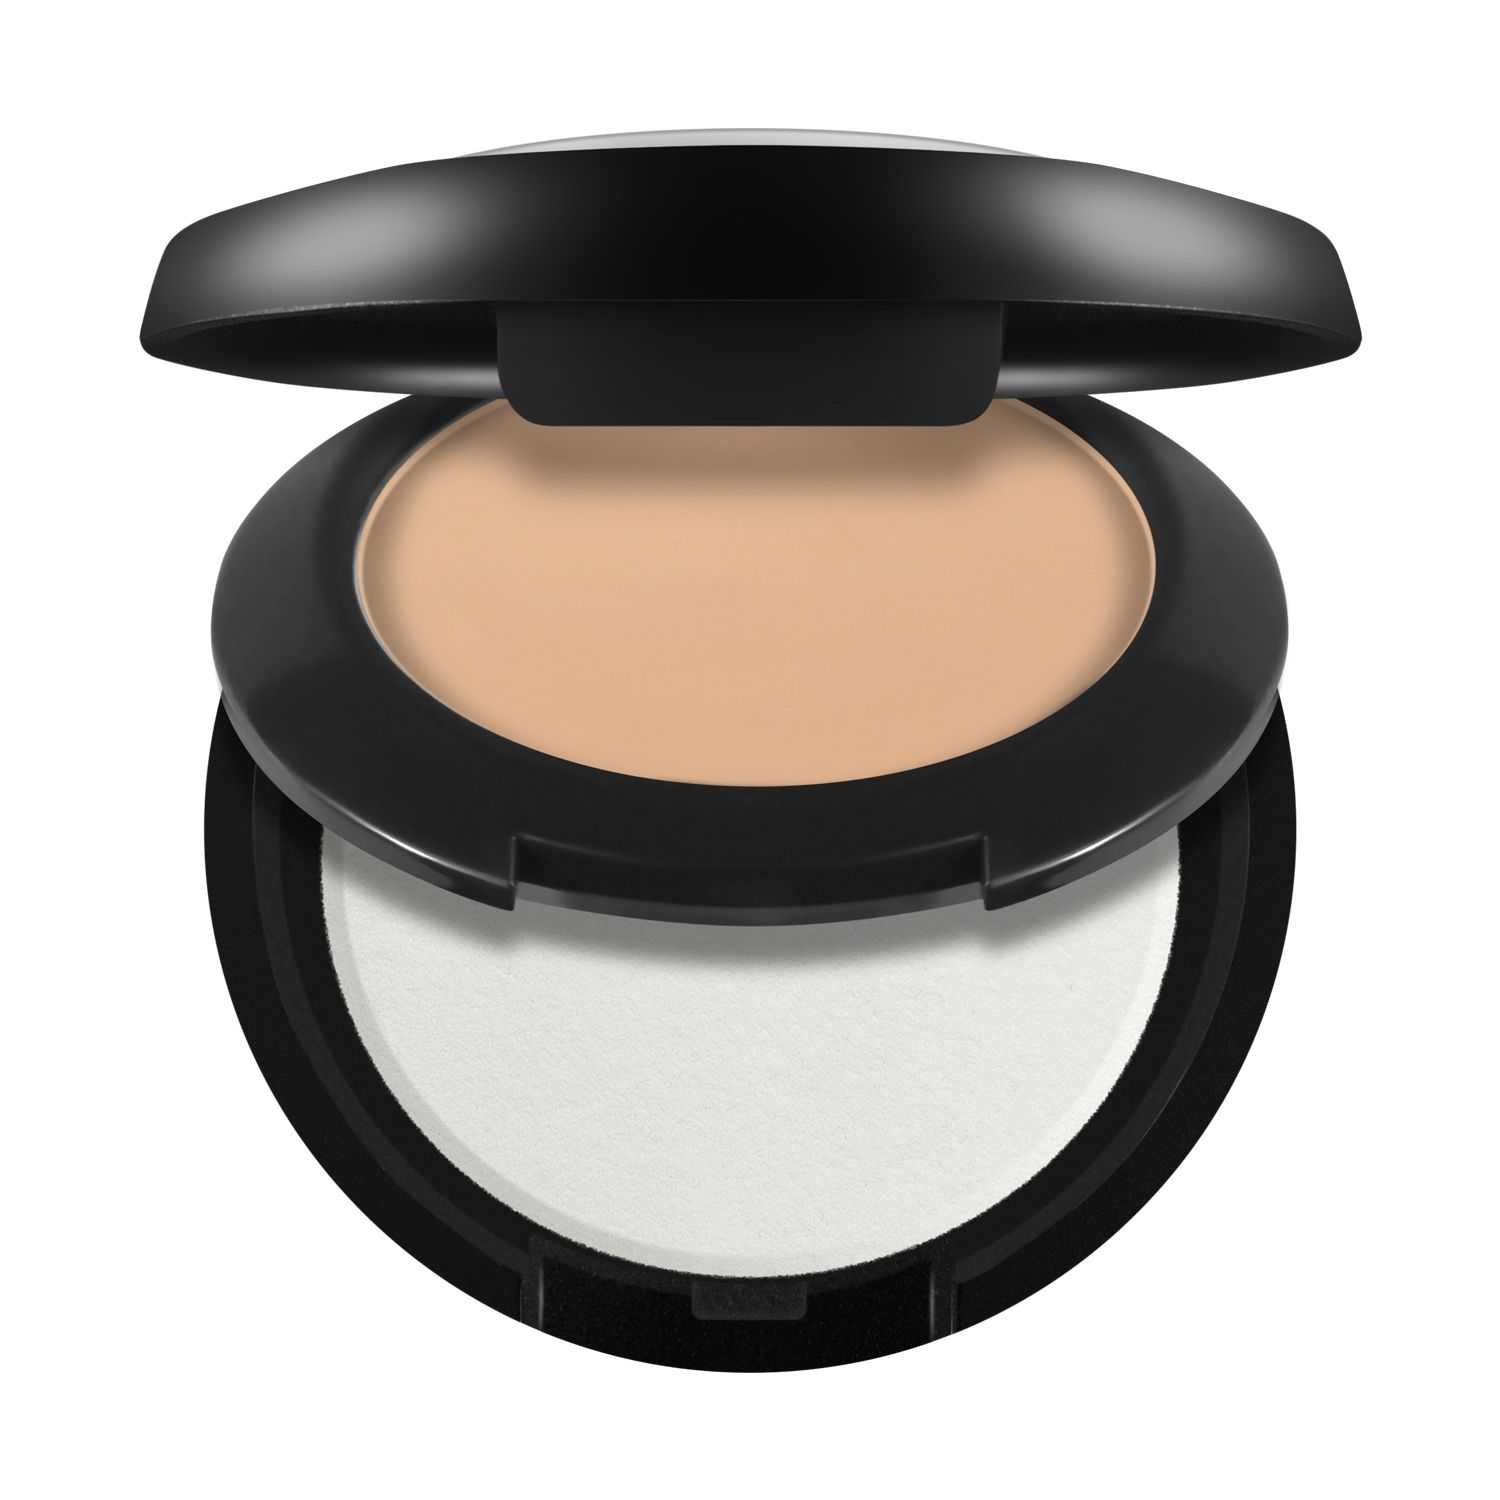 Extreme Cover Concealer Wycon Cosmetics Shop Online Make Up Global